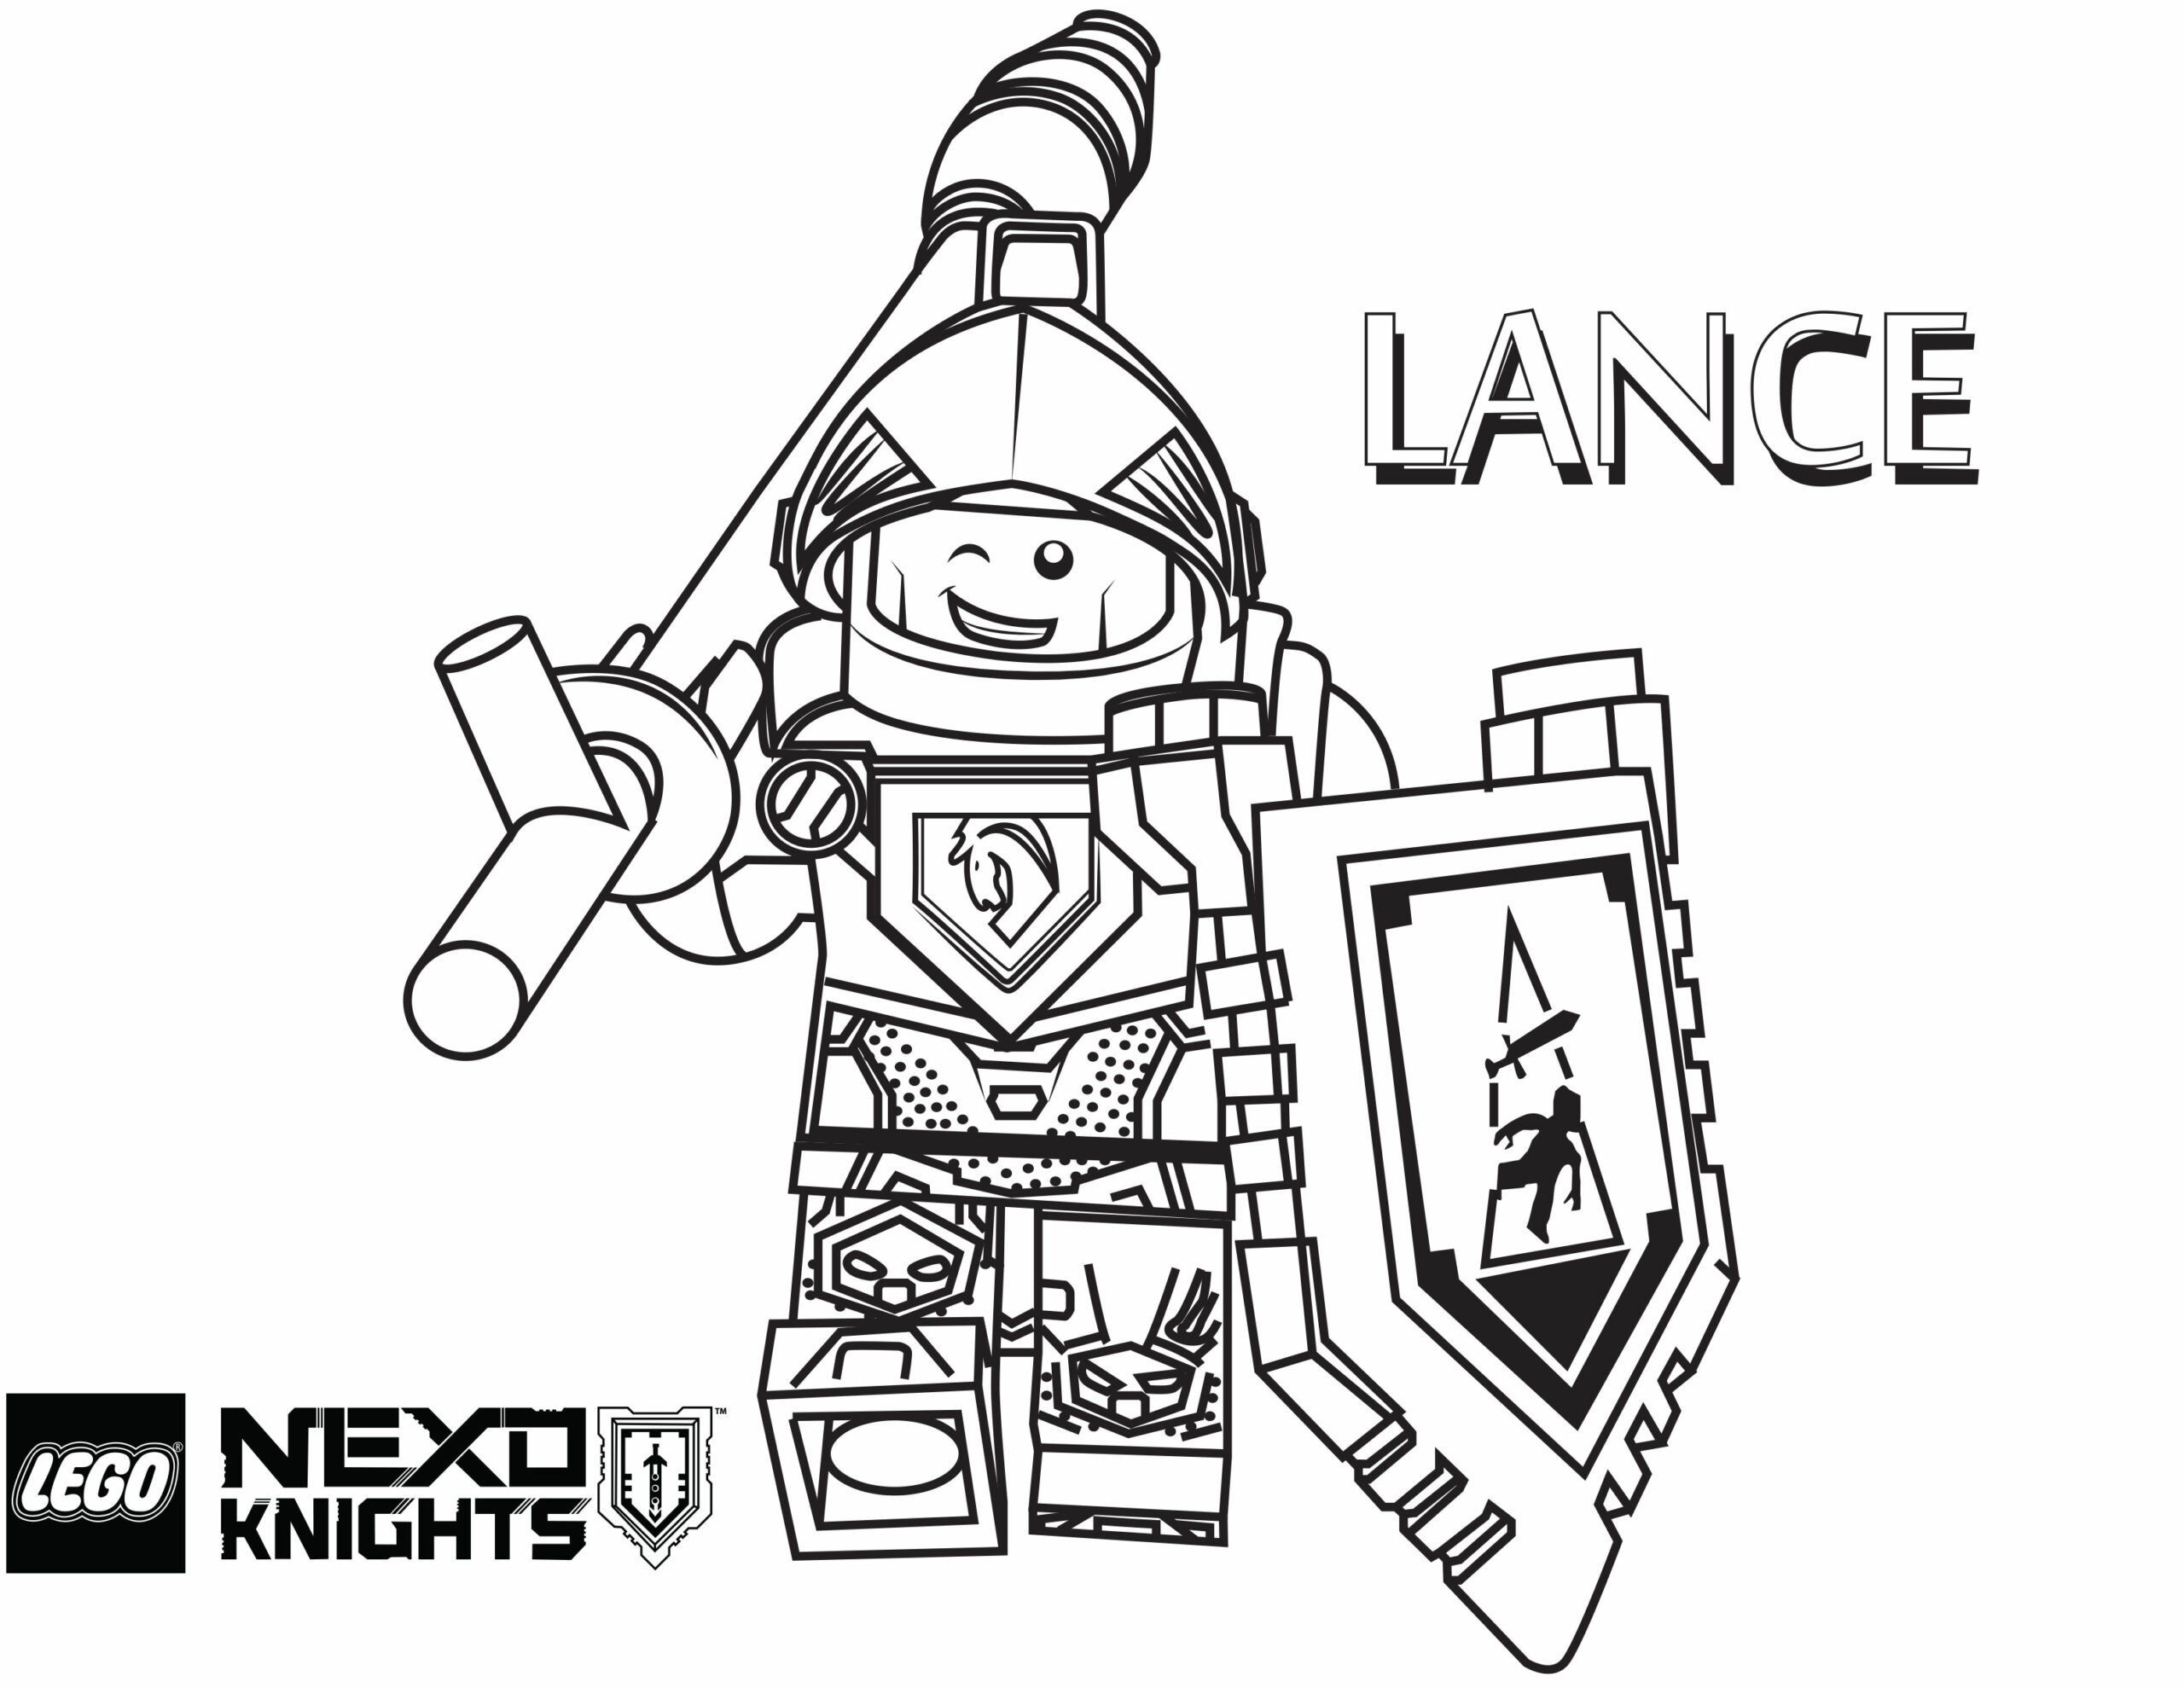 Nexo Knights Printable Coloring Pages